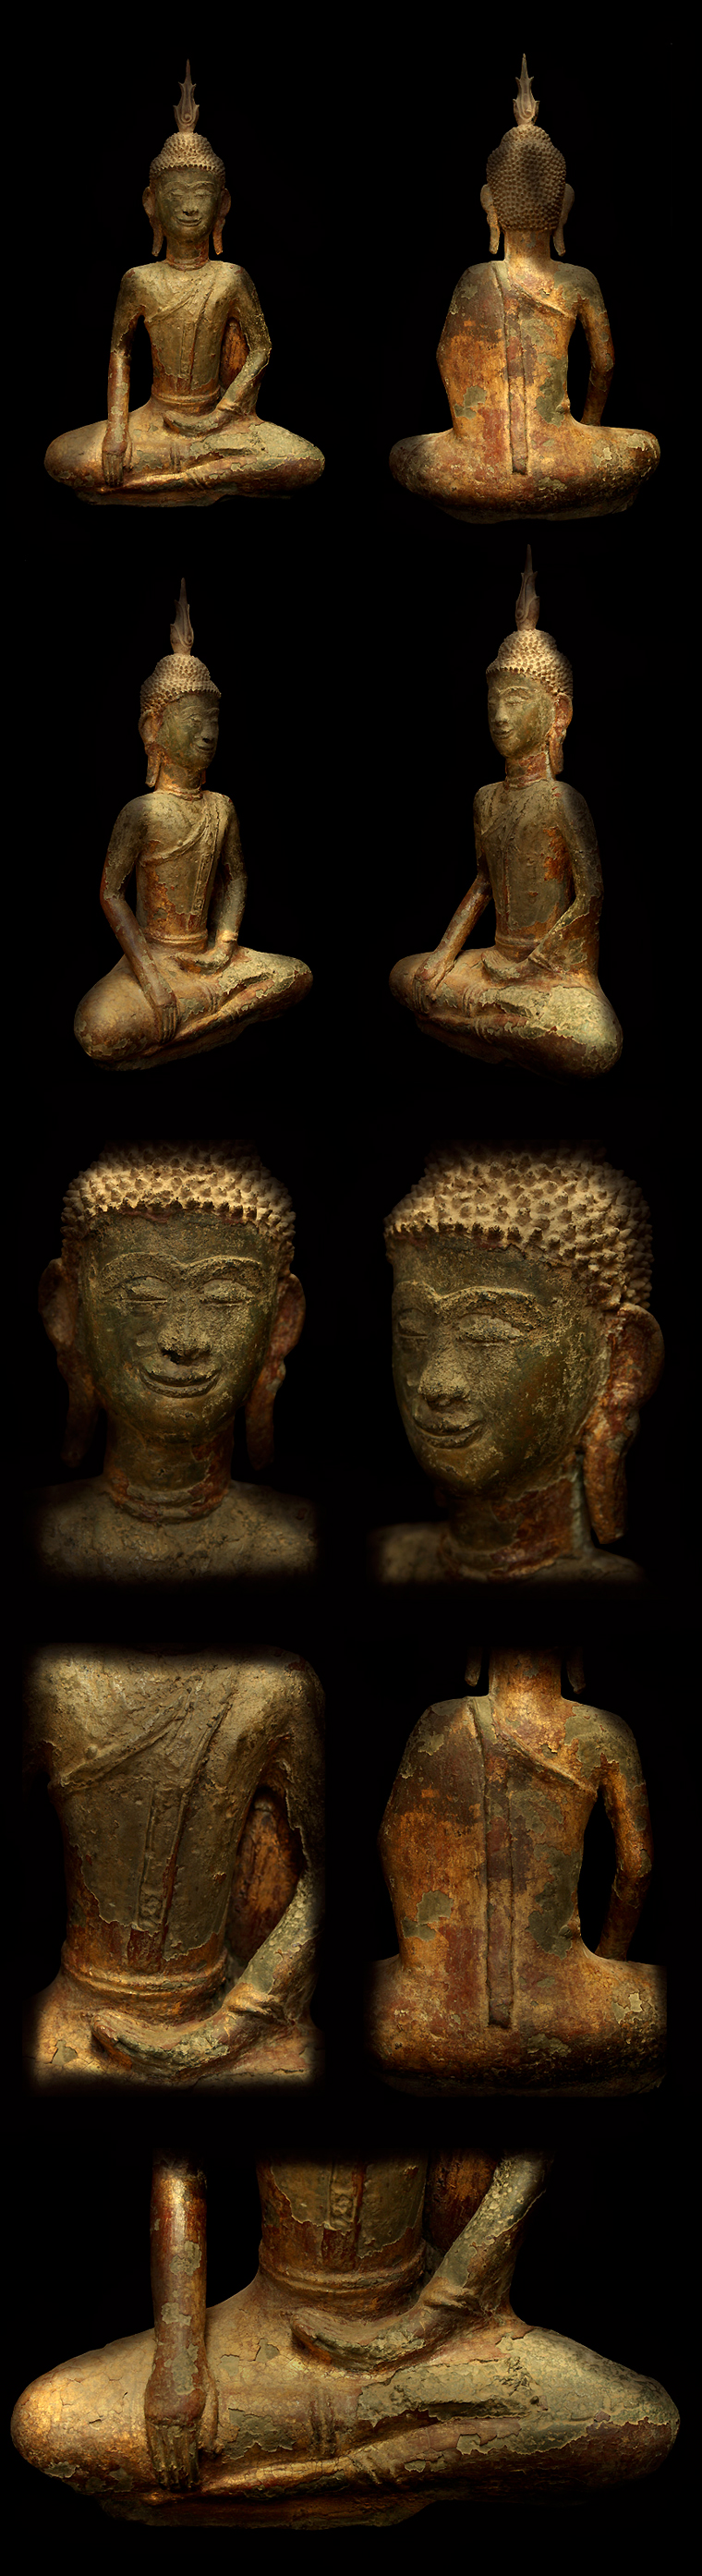 Extremely Rare 17C Sitting Bronze Laos Buddha #OF018-2